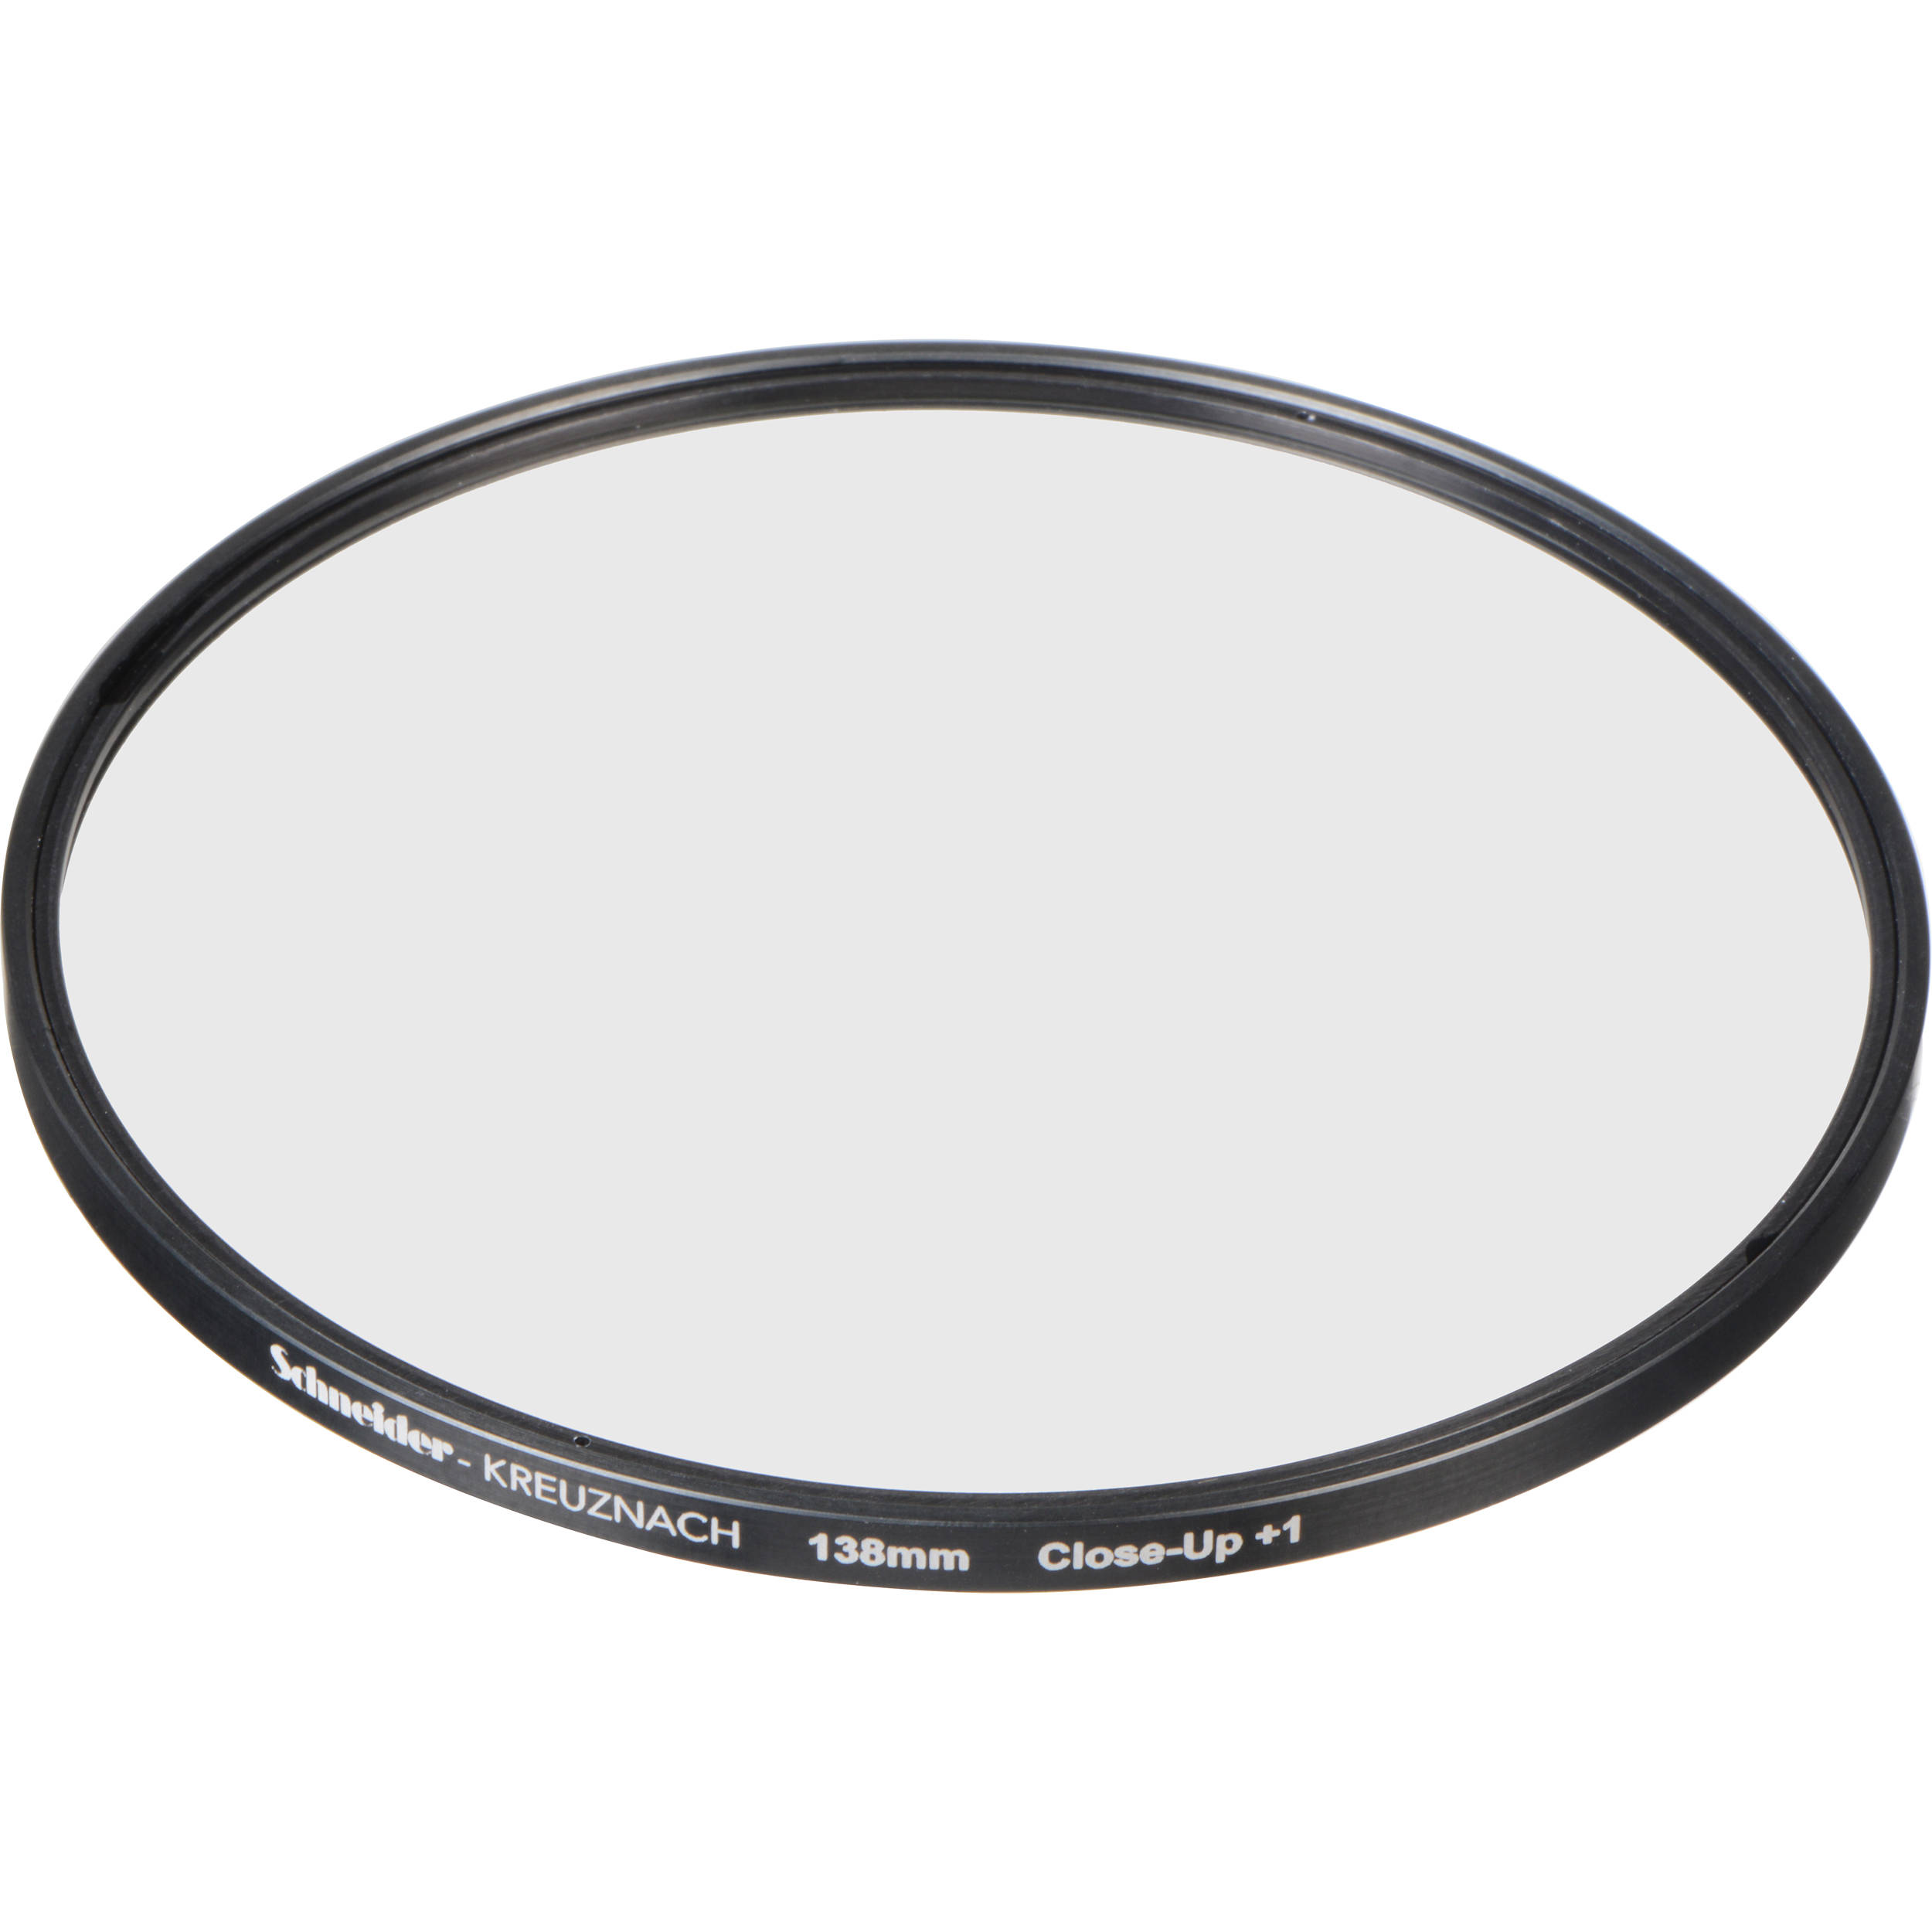 Schneider 138mm Water White Close-up Filter 2 Full Field Diopter Lens